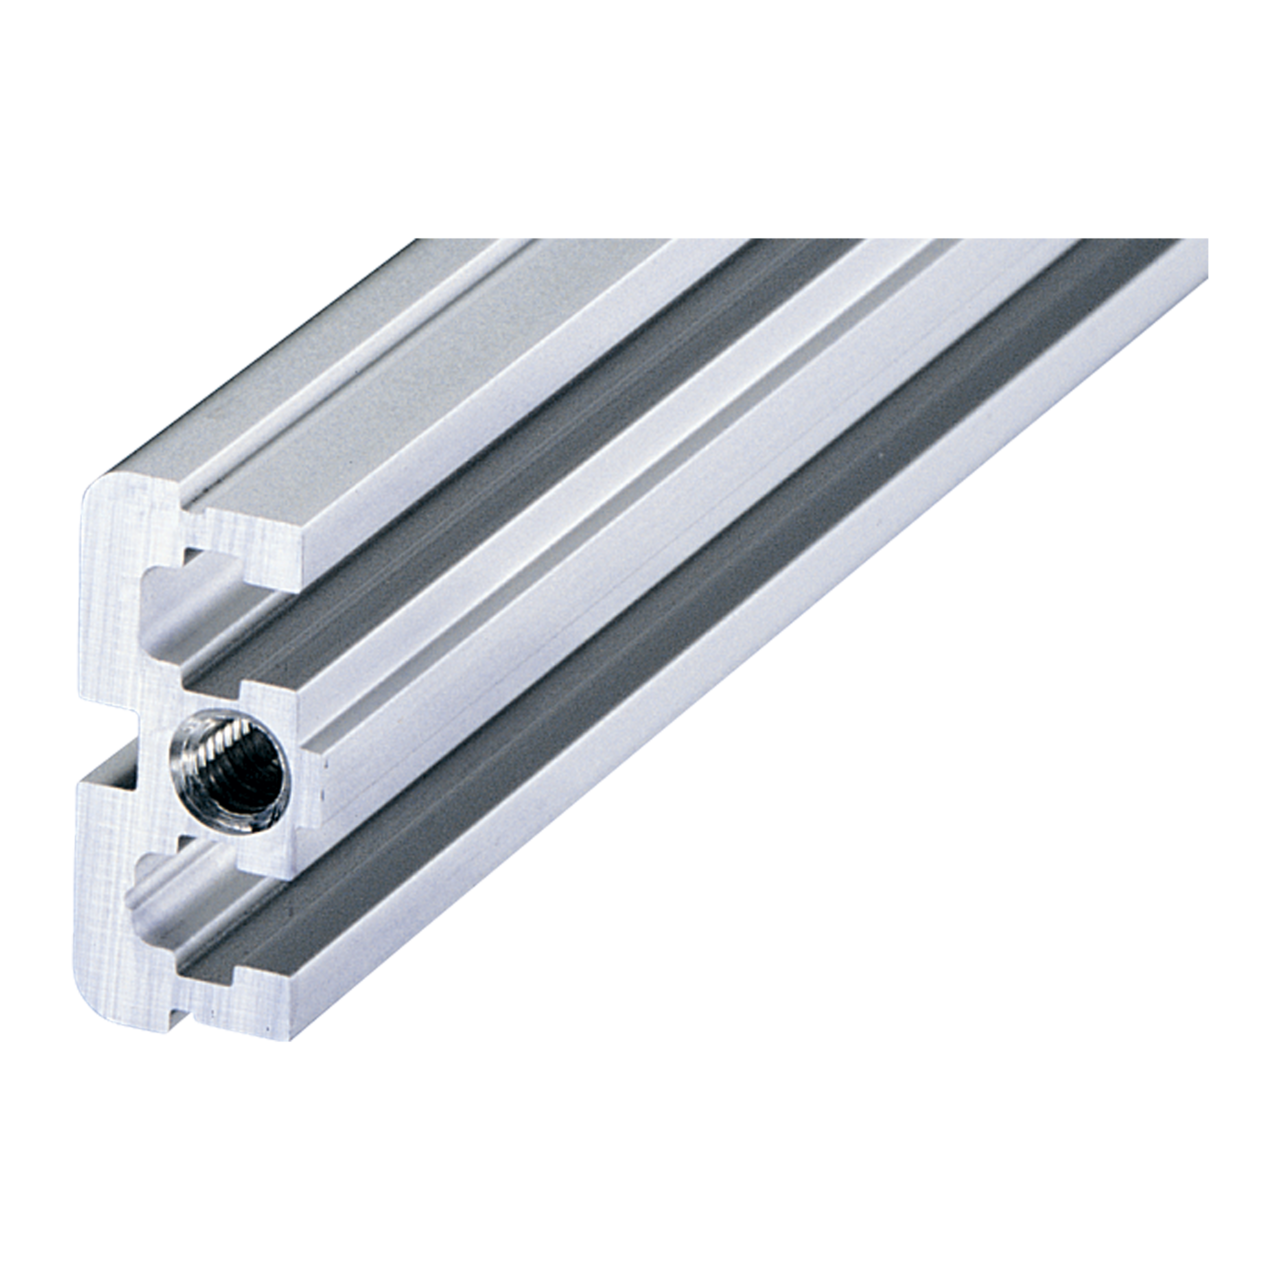 Imagen para Horizontal rail, rear, center, type ST de Schroff - Norteamérica